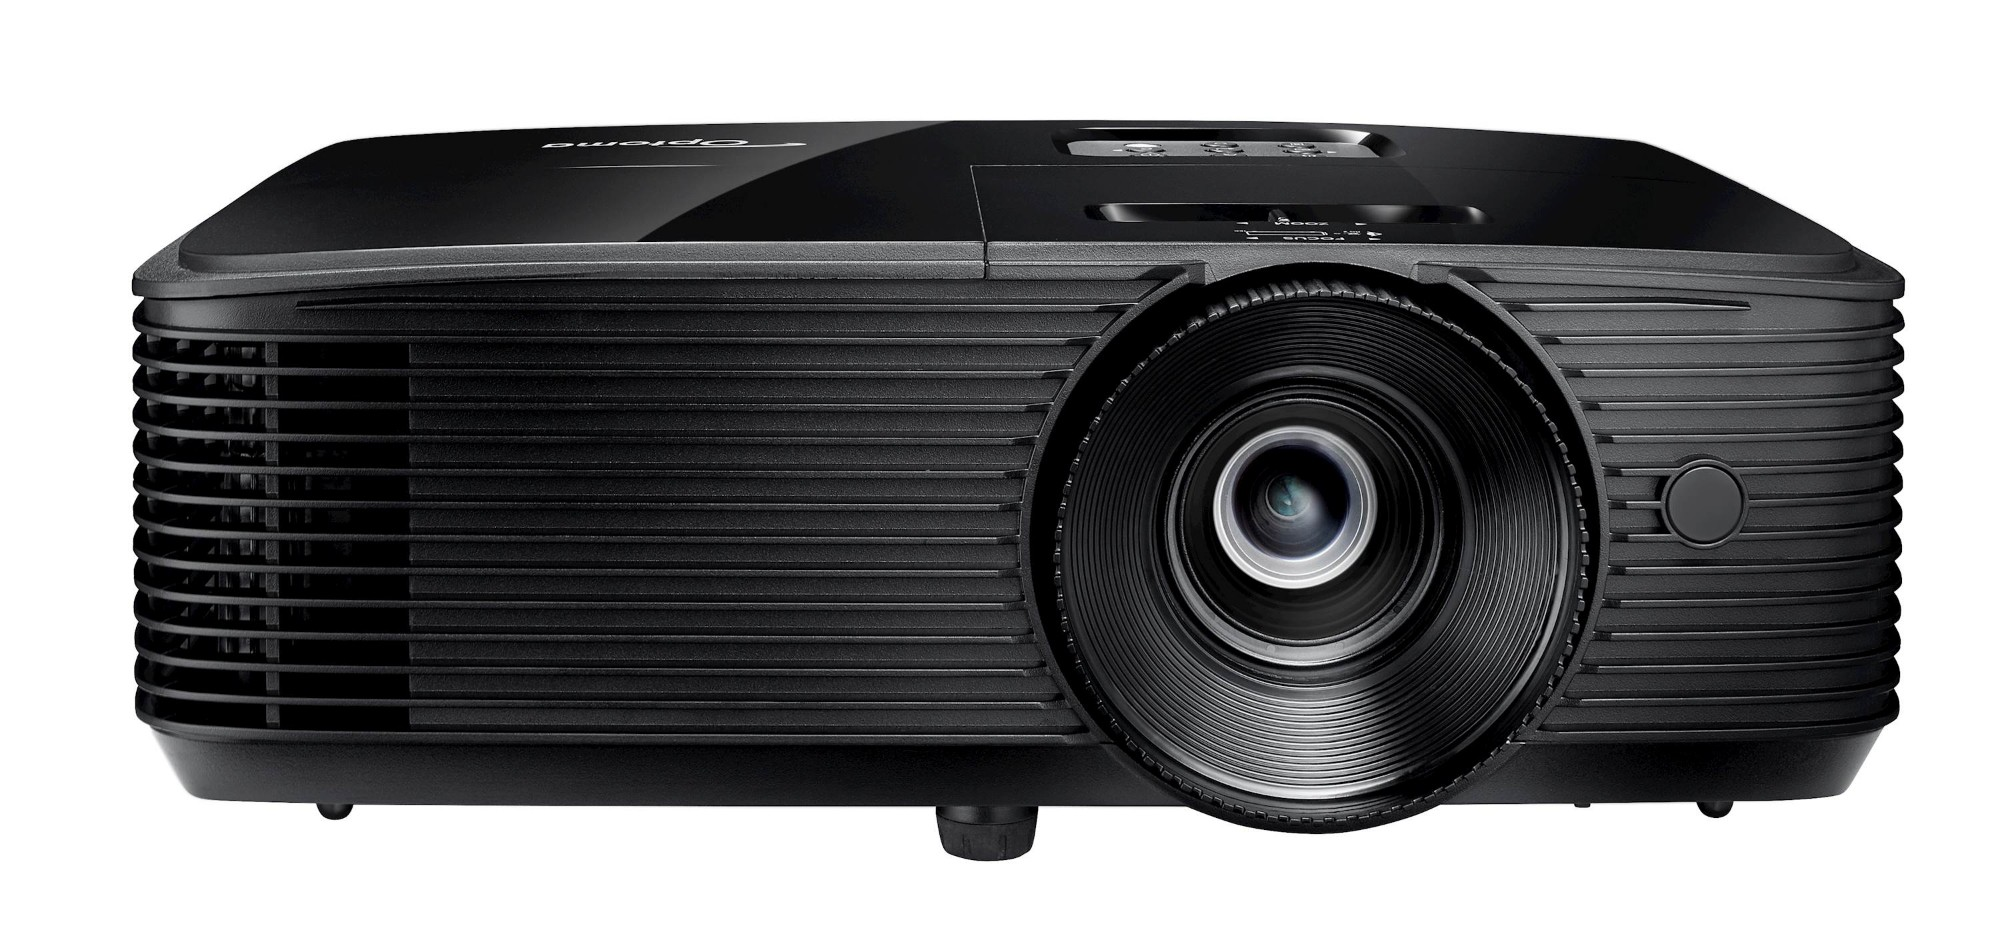 Optoma DH350 data projector 3200 ANSI lumens DLP 1080p (1920x1080) 3D Desktop projector Black